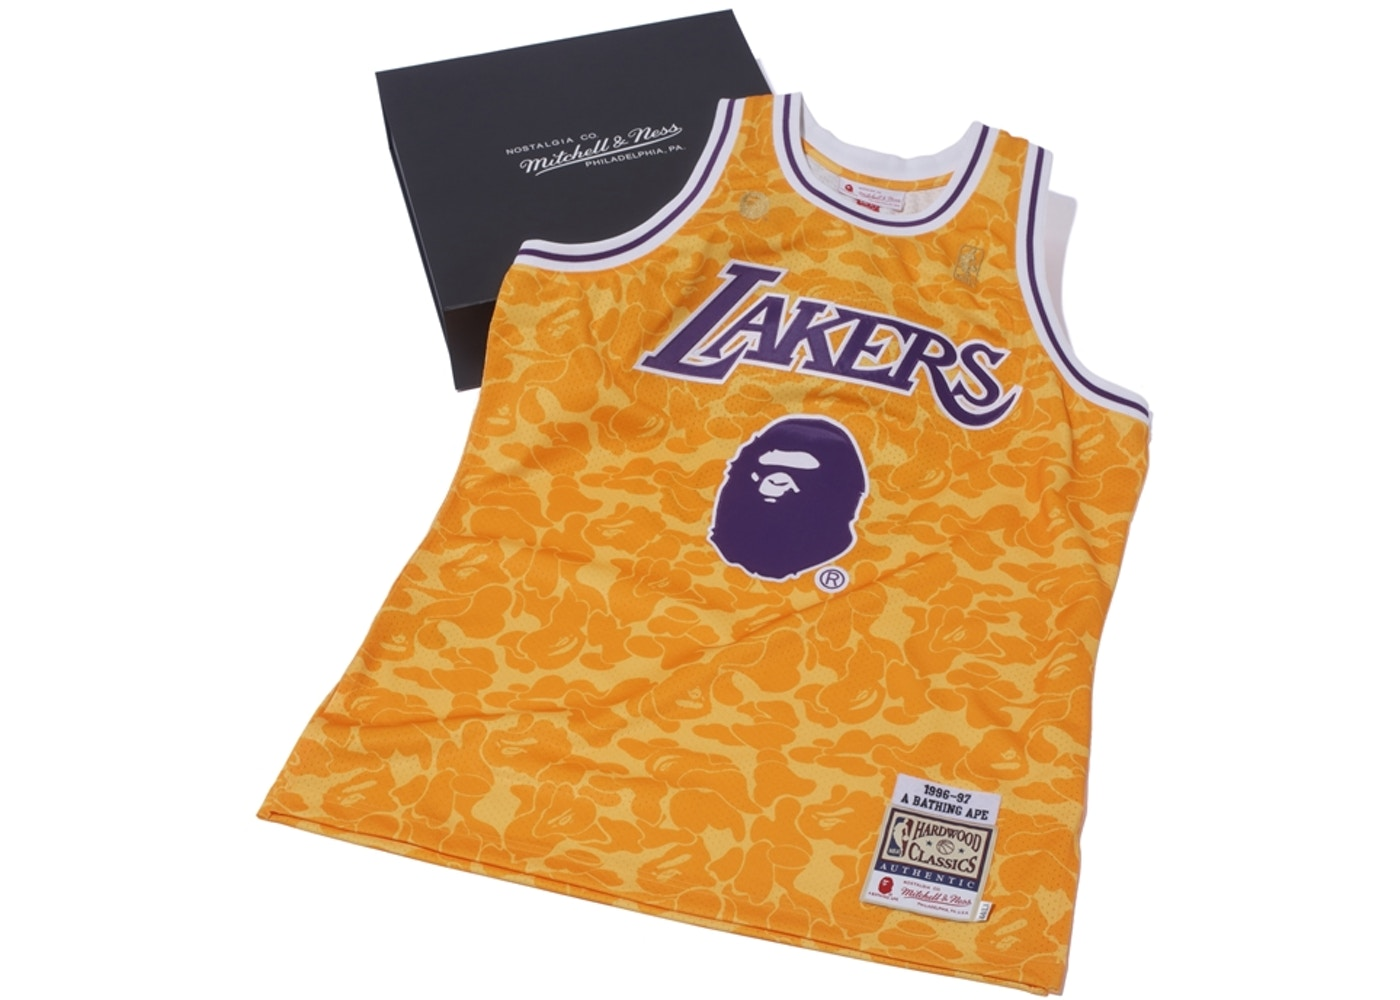 6153bedaf2a BAPE x Mitchell & Ness Lakers ABC Basketball Authentic Jersey Yellow